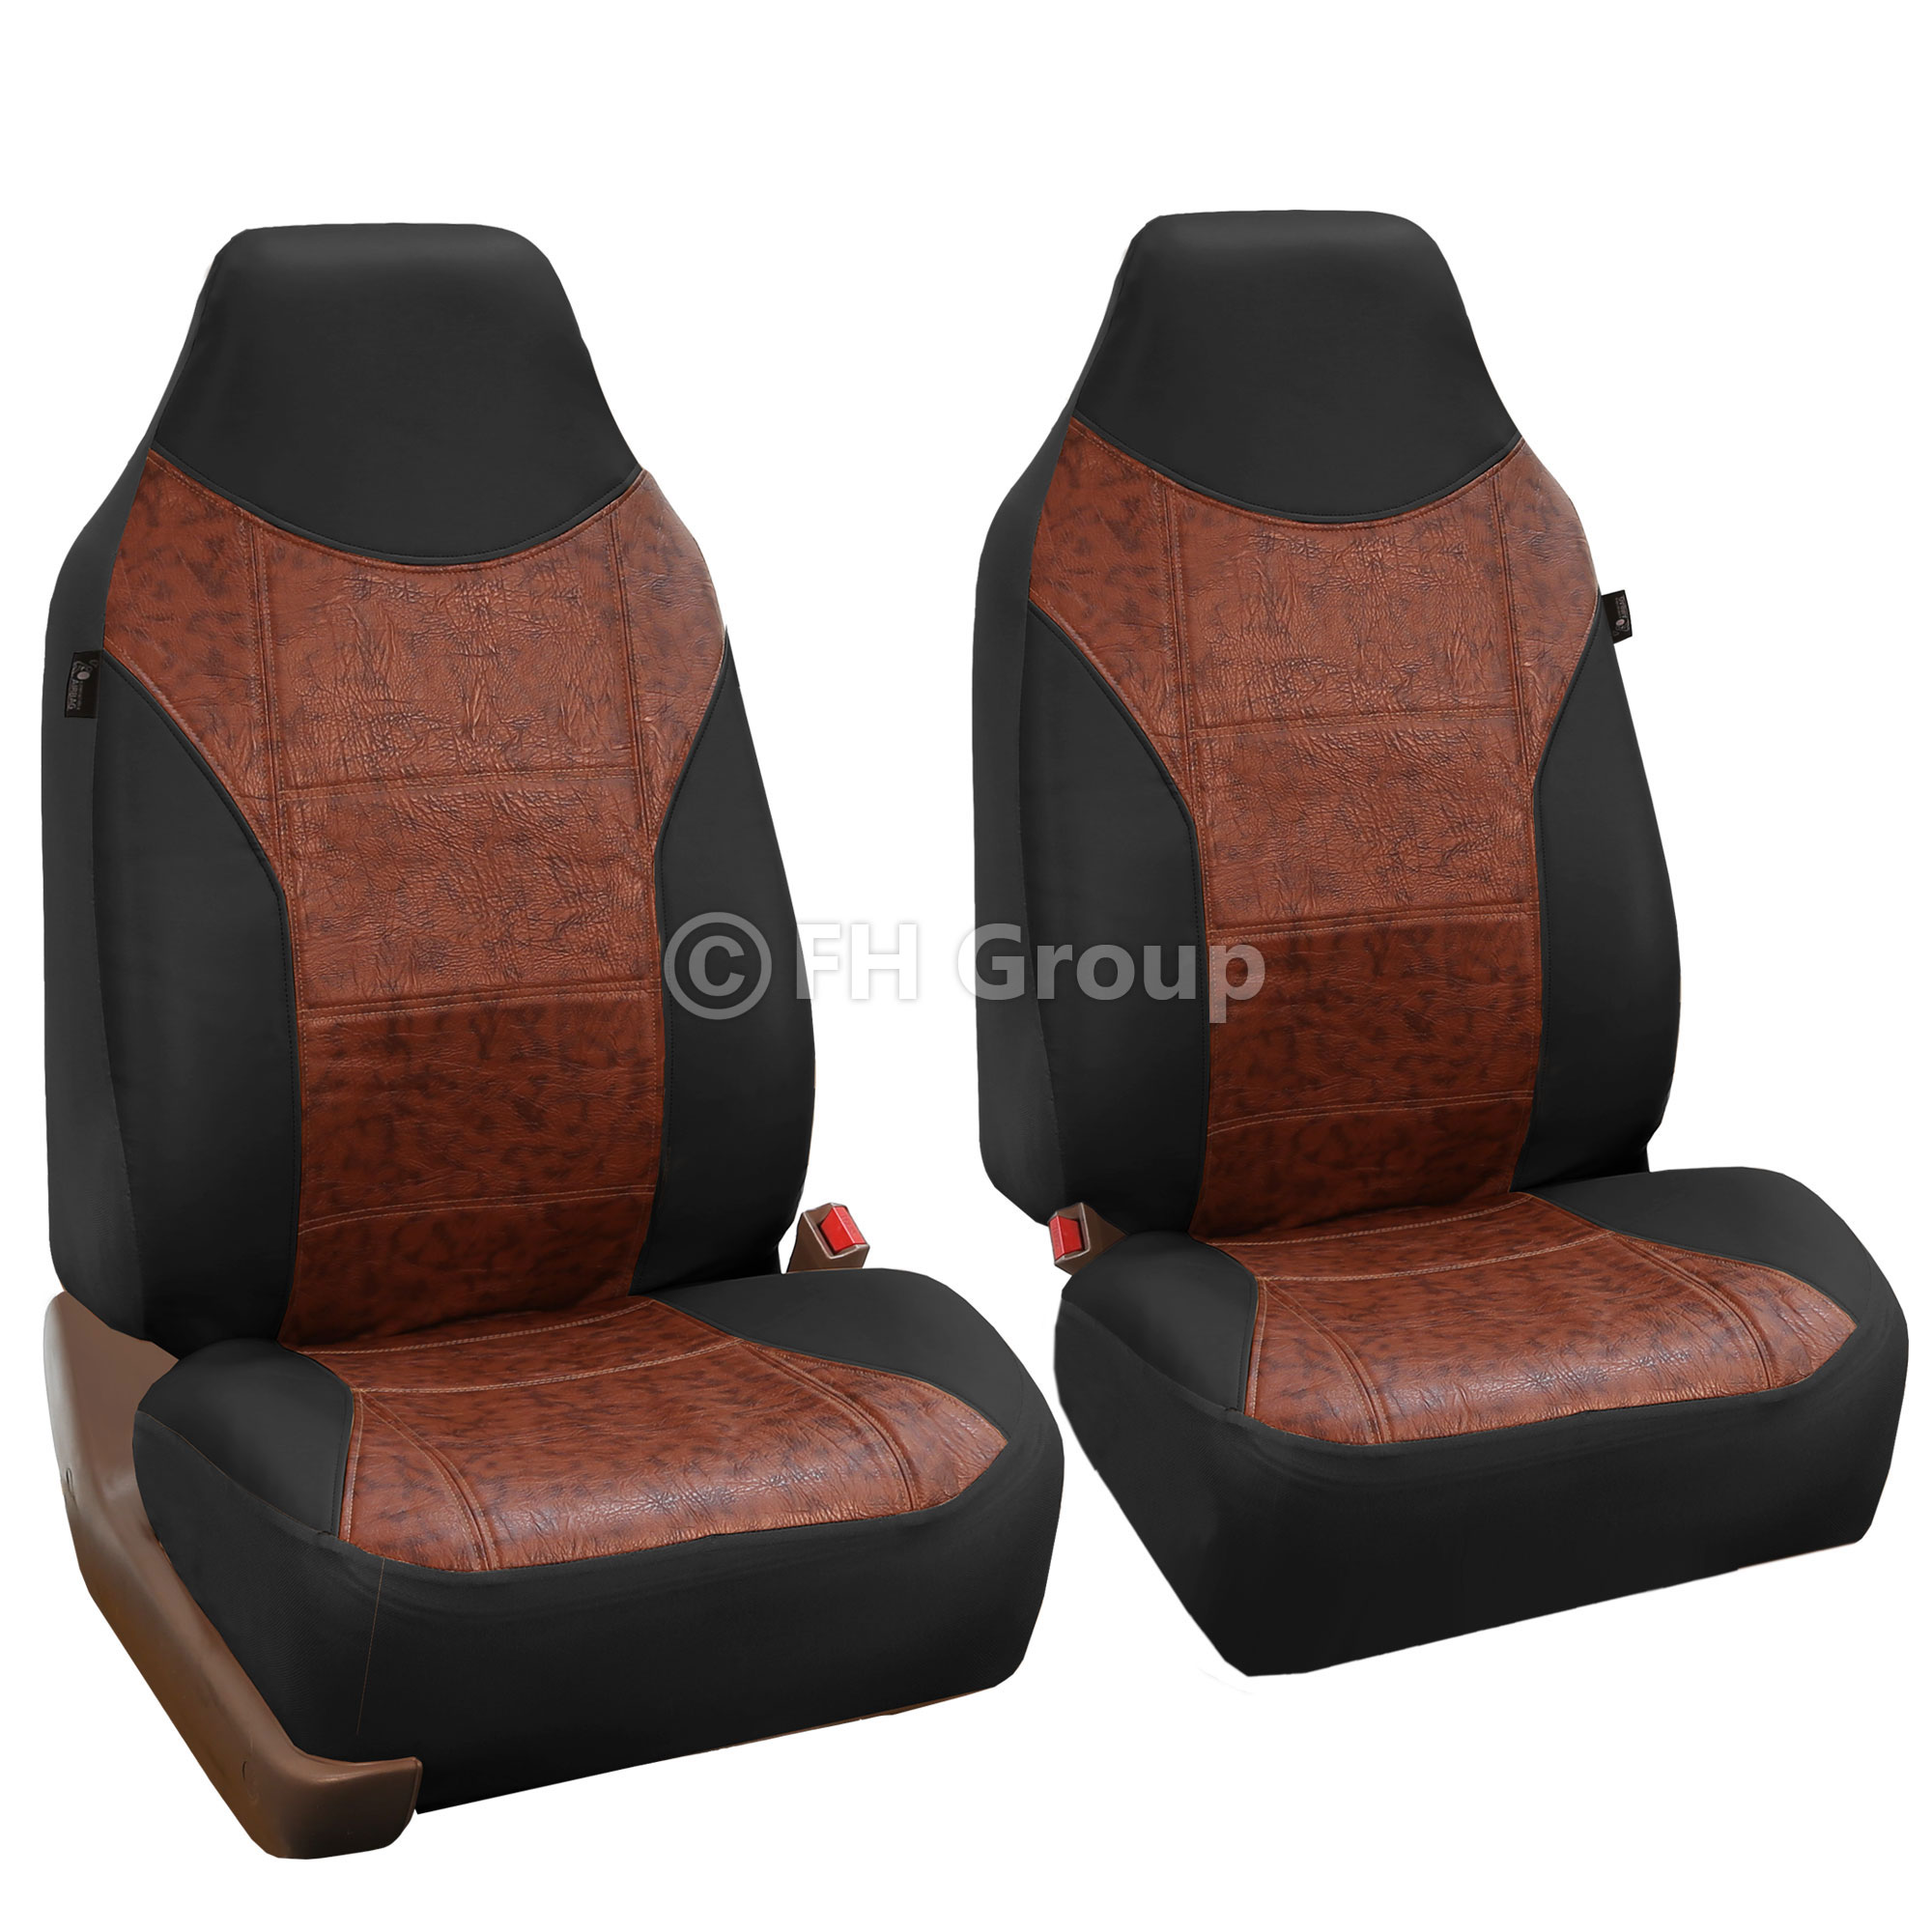 FH Group Highback Textured Leather Seat Covers for Sedan, SUV, Van, Truck, Two Highback Buckets, Black